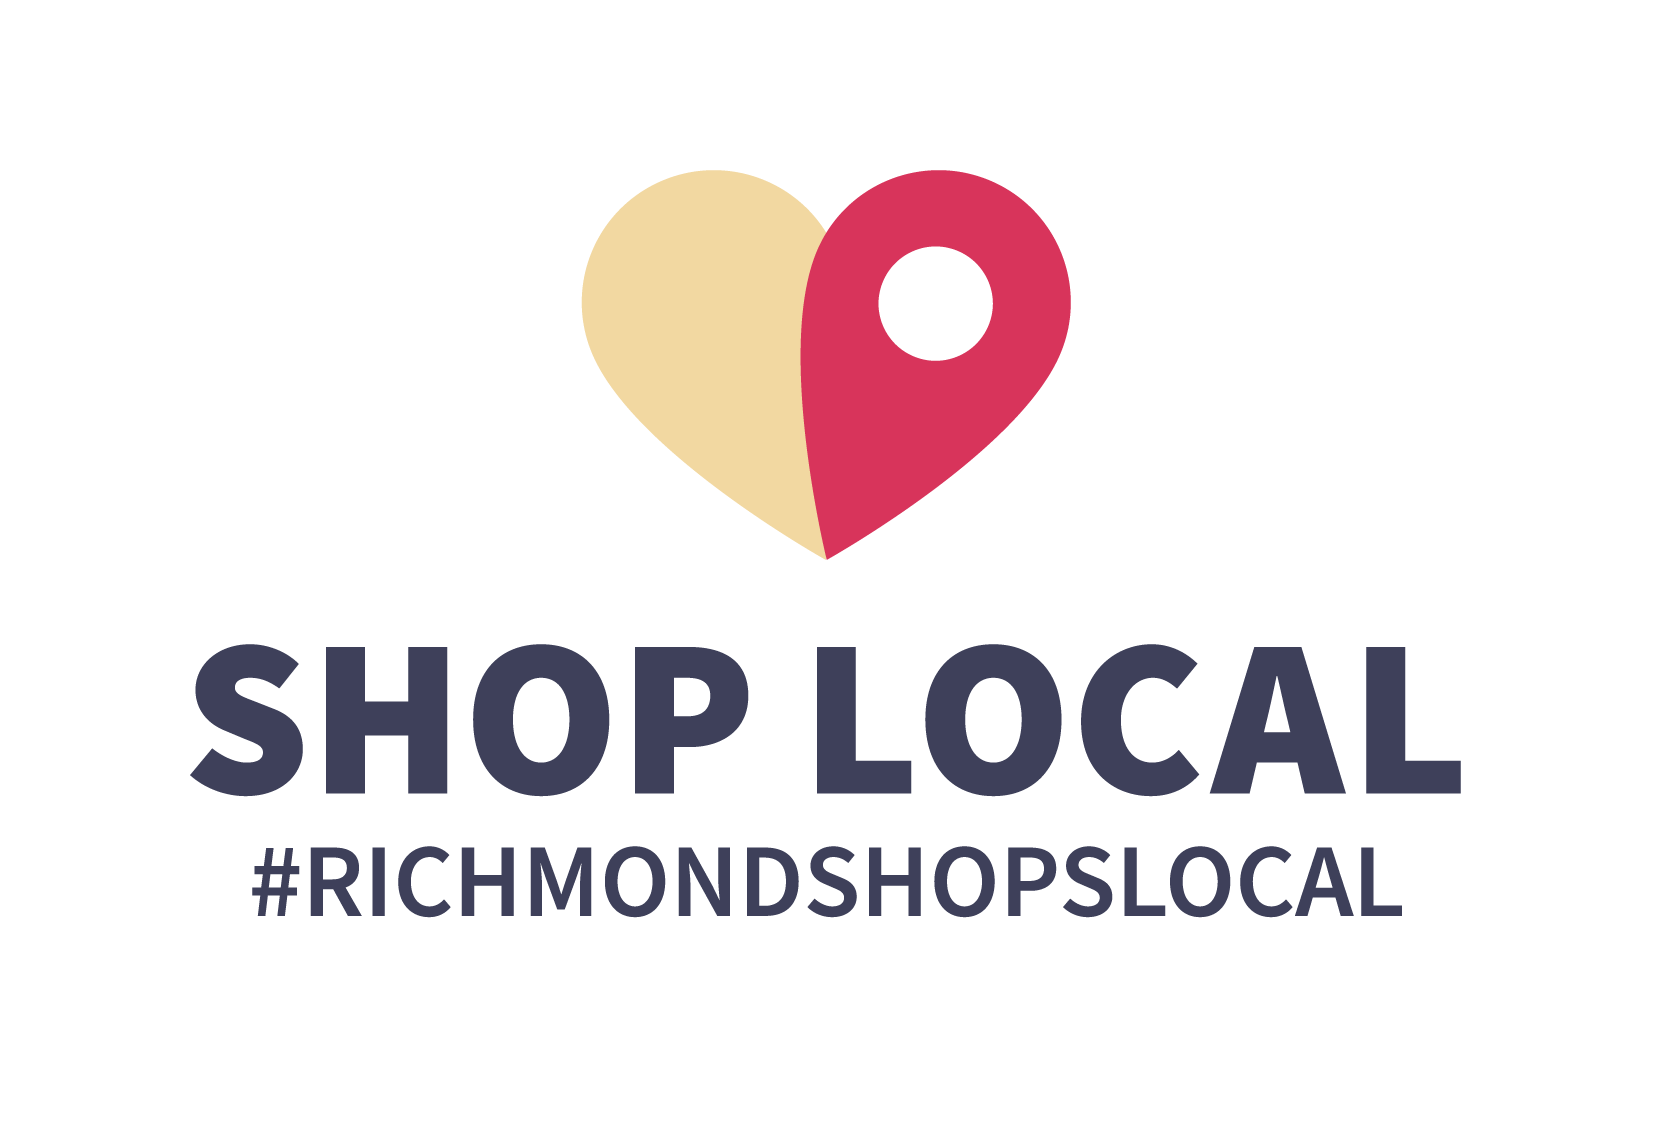 Richmond_Shop_Local_Hashtag_Logo_RGB_Colour_Portrait-1